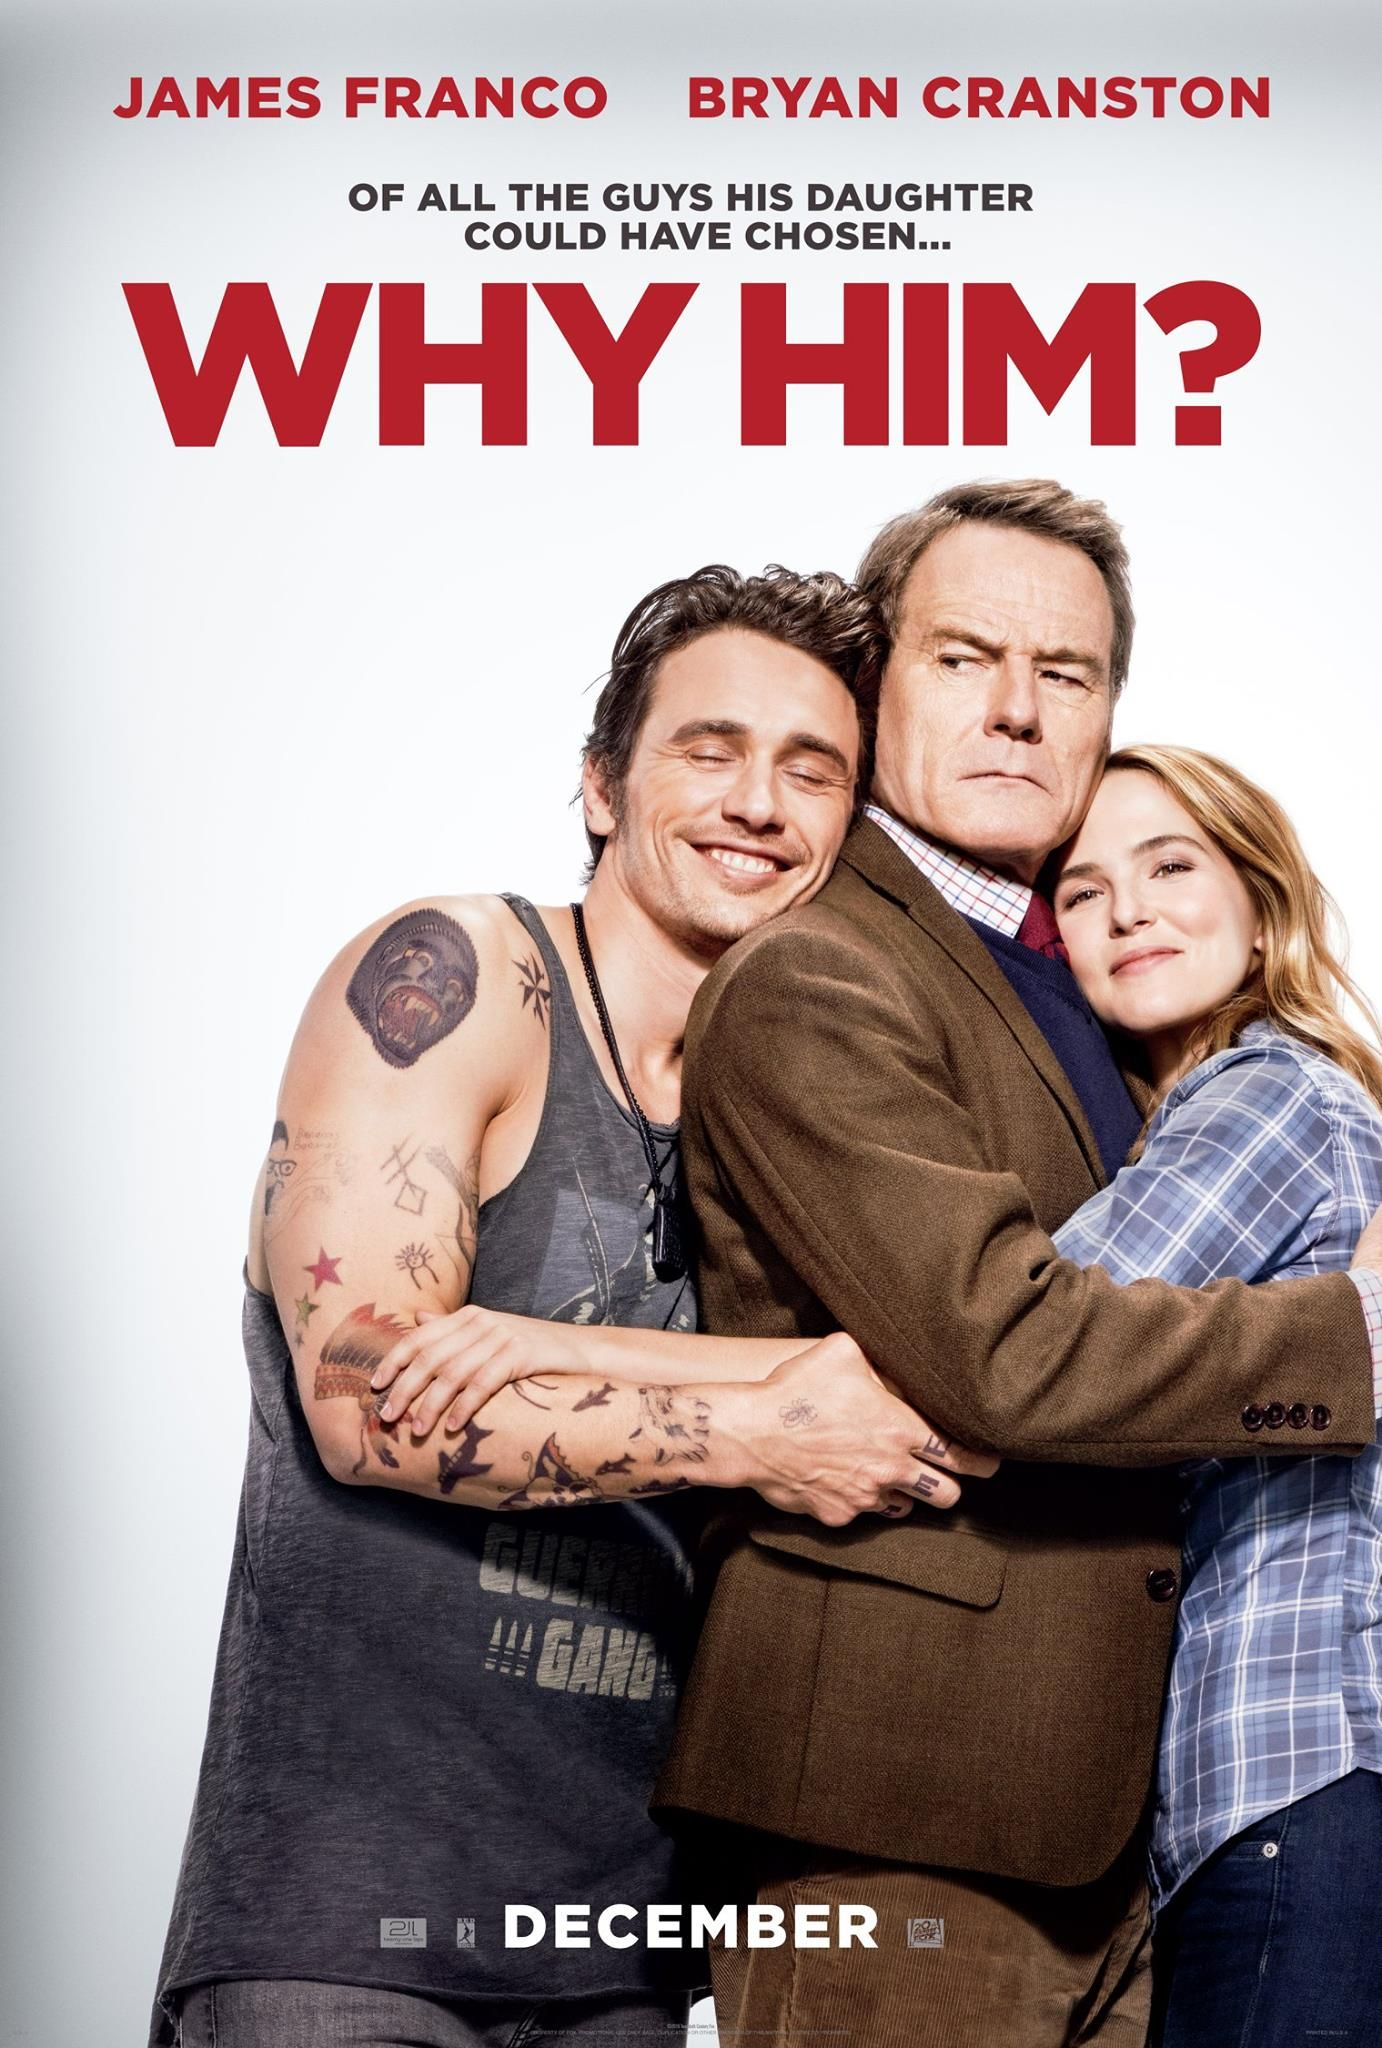 Why Him Hits Theaters On Christmas Day 2016 James Franco Bryan Cranston Film Bollywood